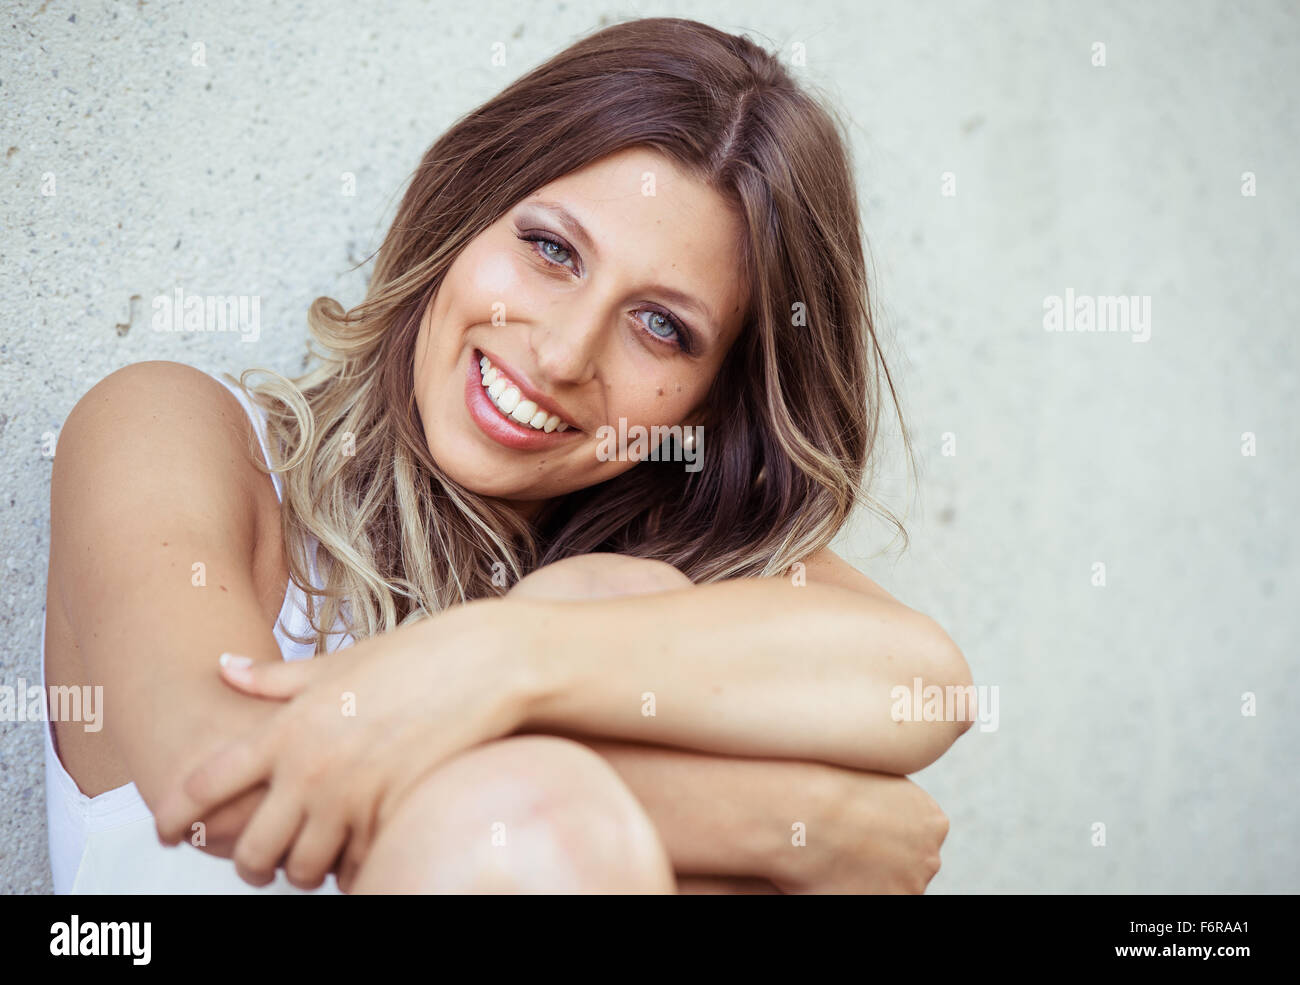 Young, handsome woman, smiling, with long hair and blue eyes, portrait - Stock Image